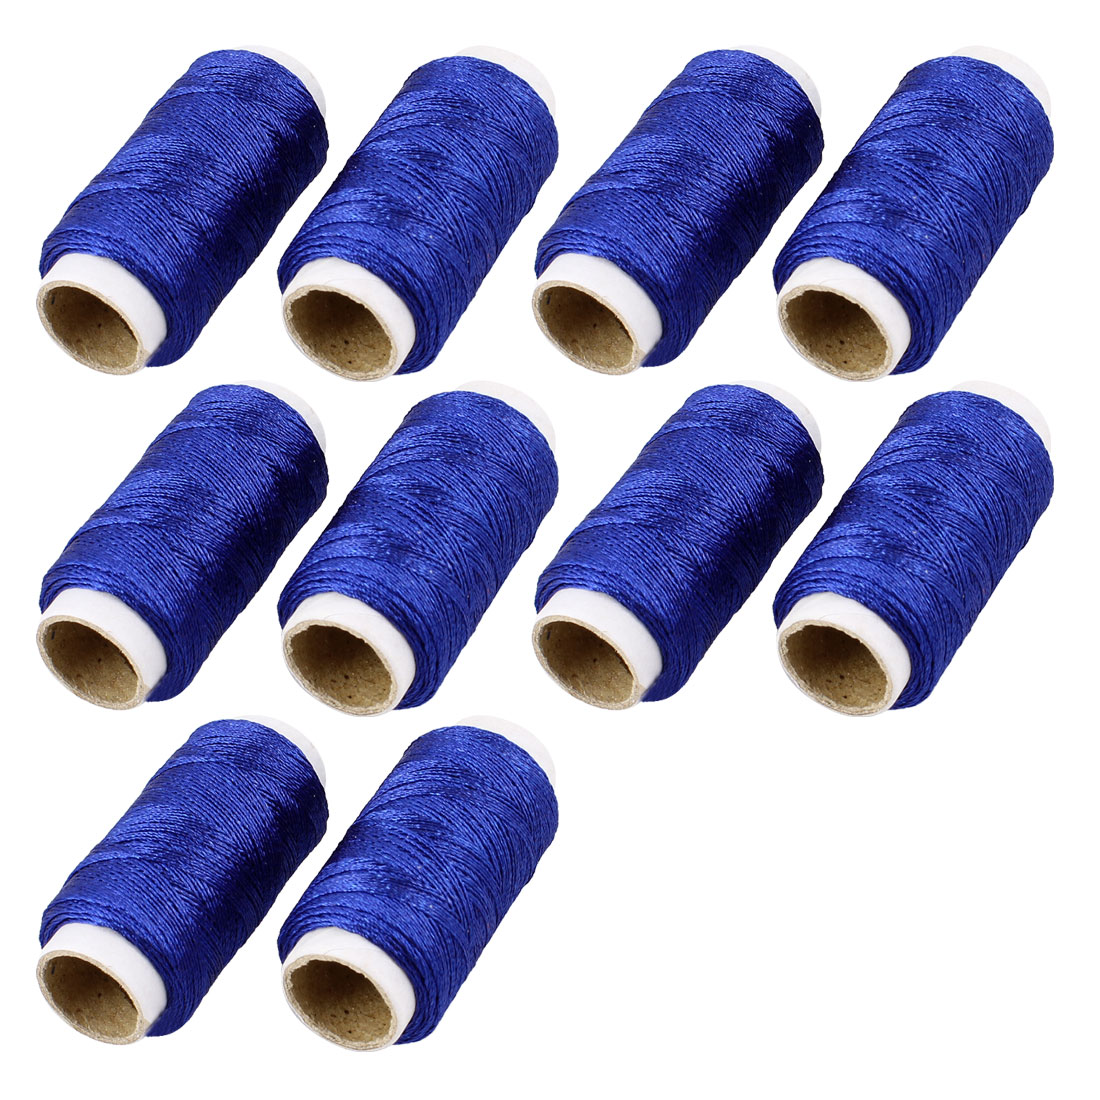 10 Spools Royal Blue Polyester String Thread Reel Needlework Sewing Kit